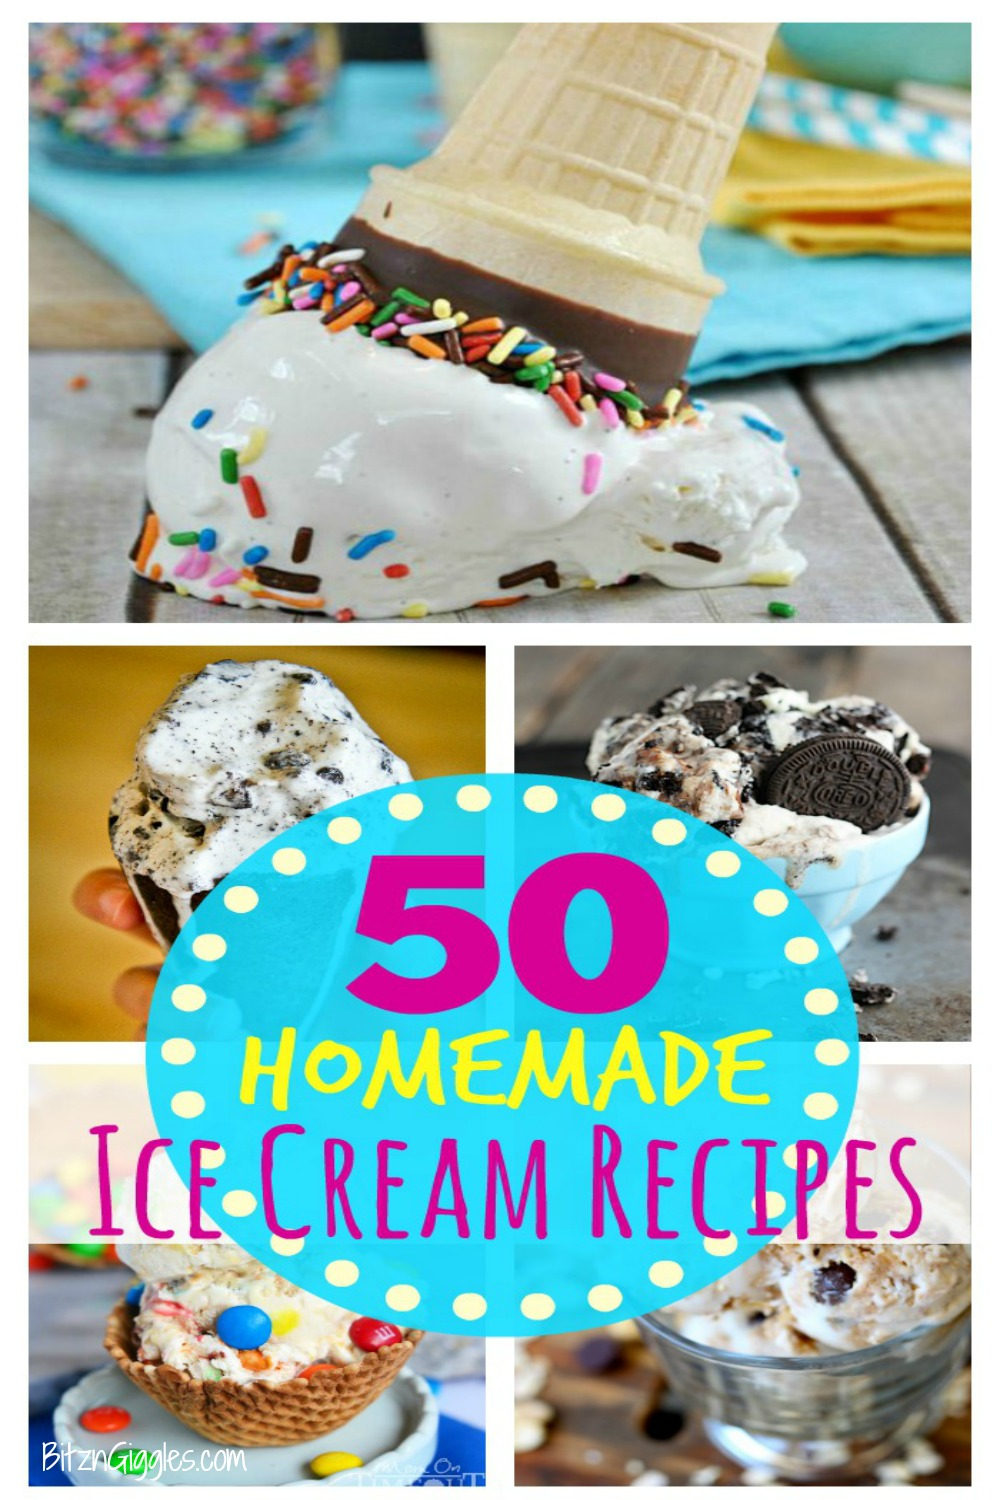 50 Homemade Ice Cream Recipes - Delicious homemade no-churn ice cream recipes you can make at home!